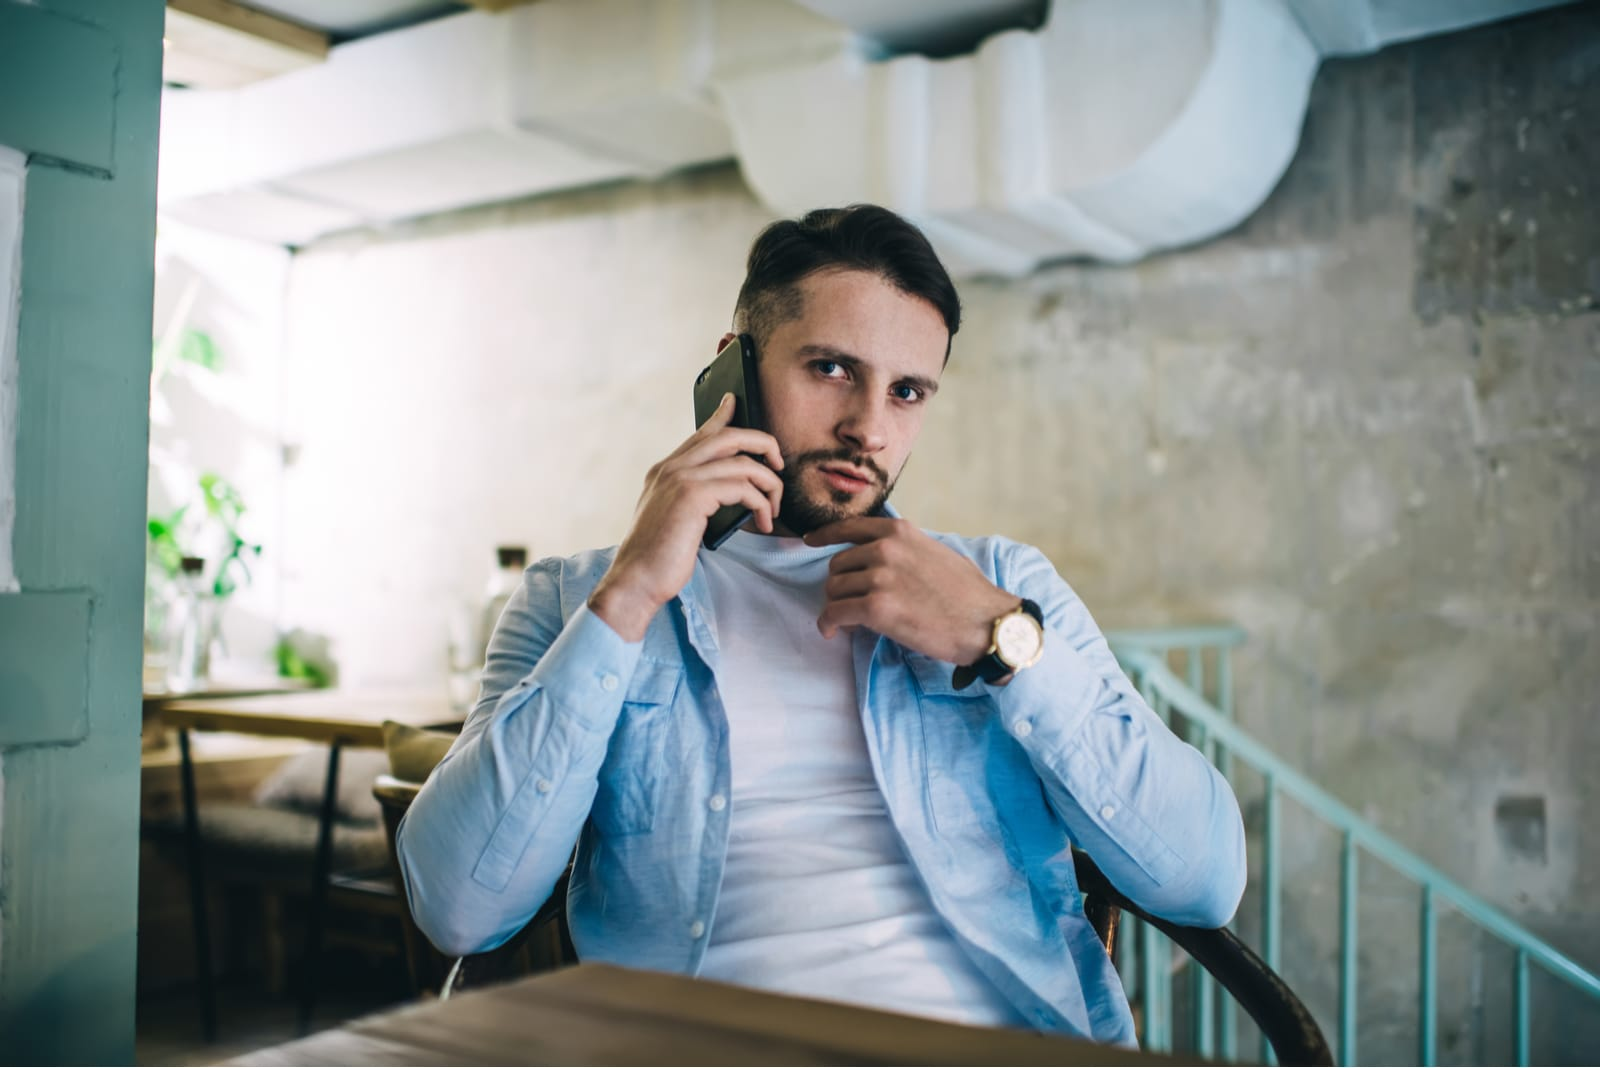 a serious man in a blue shirt is sitting in a cafe and calling someone on his cell phone